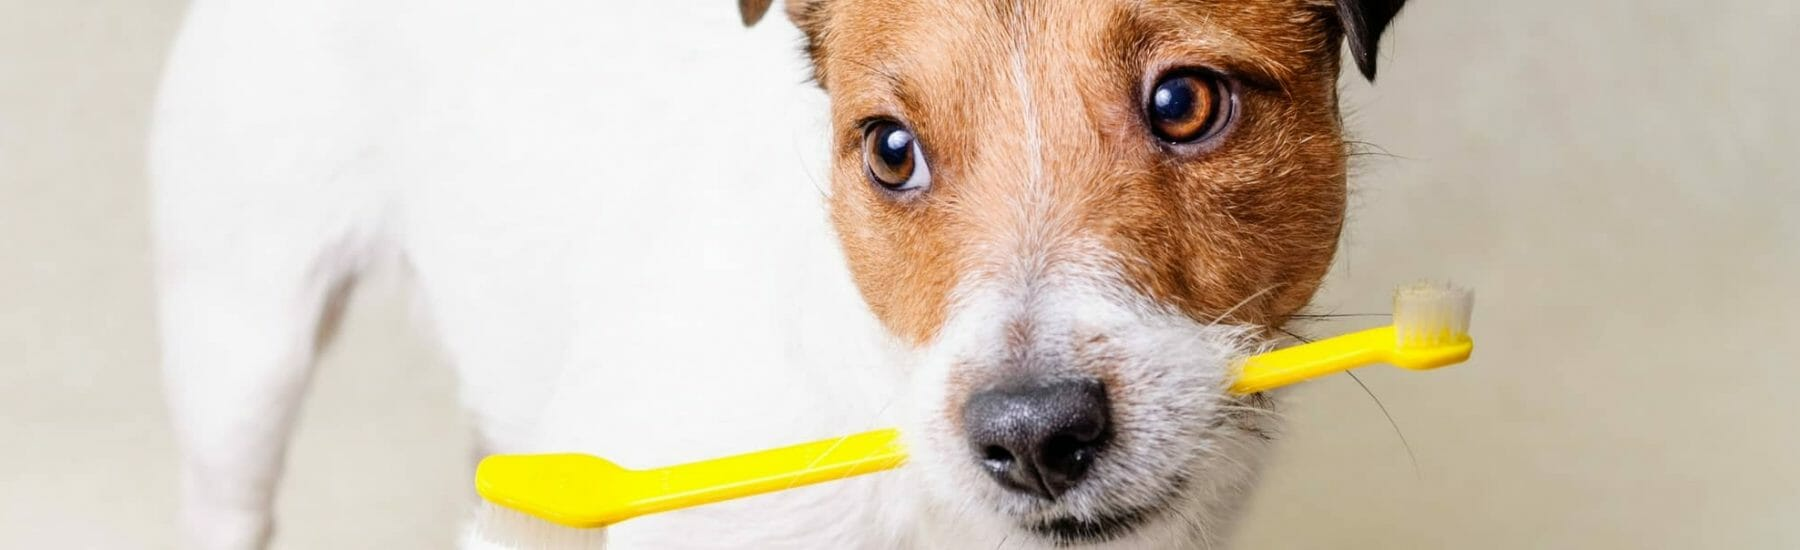 Jack Russell with a Yellow Toothbrush in Mouth